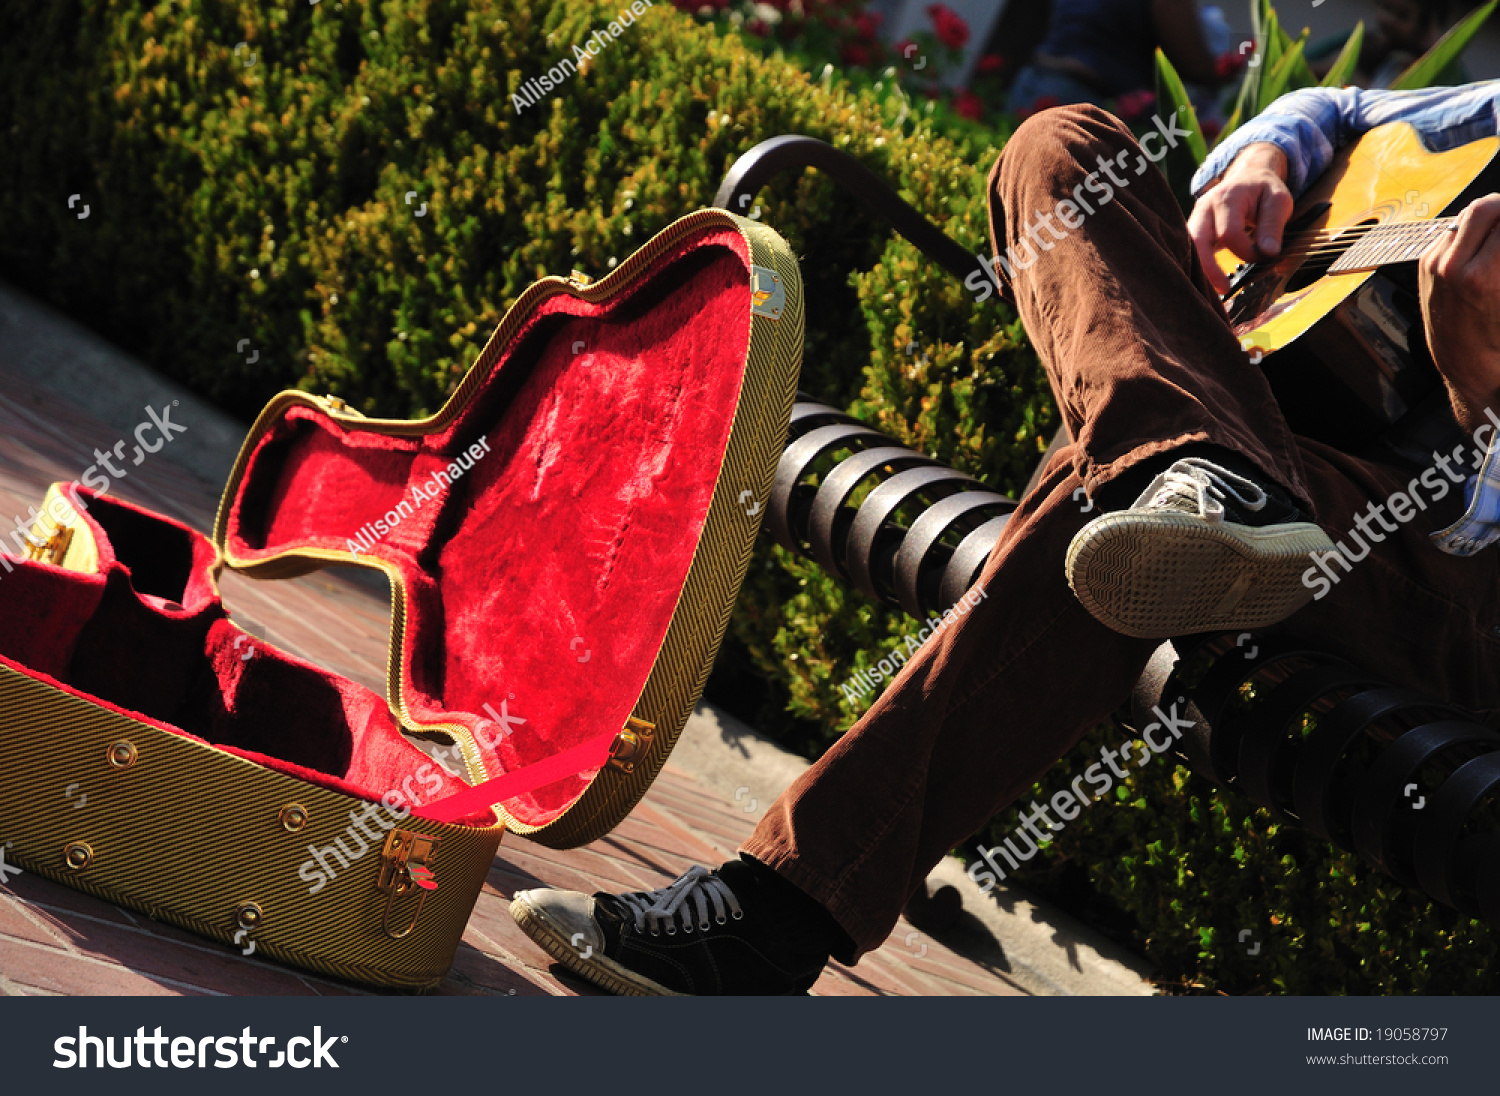 red lined guitar case of a street musician sitting on a bench stock photo 19058797 shutterstock. Black Bedroom Furniture Sets. Home Design Ideas